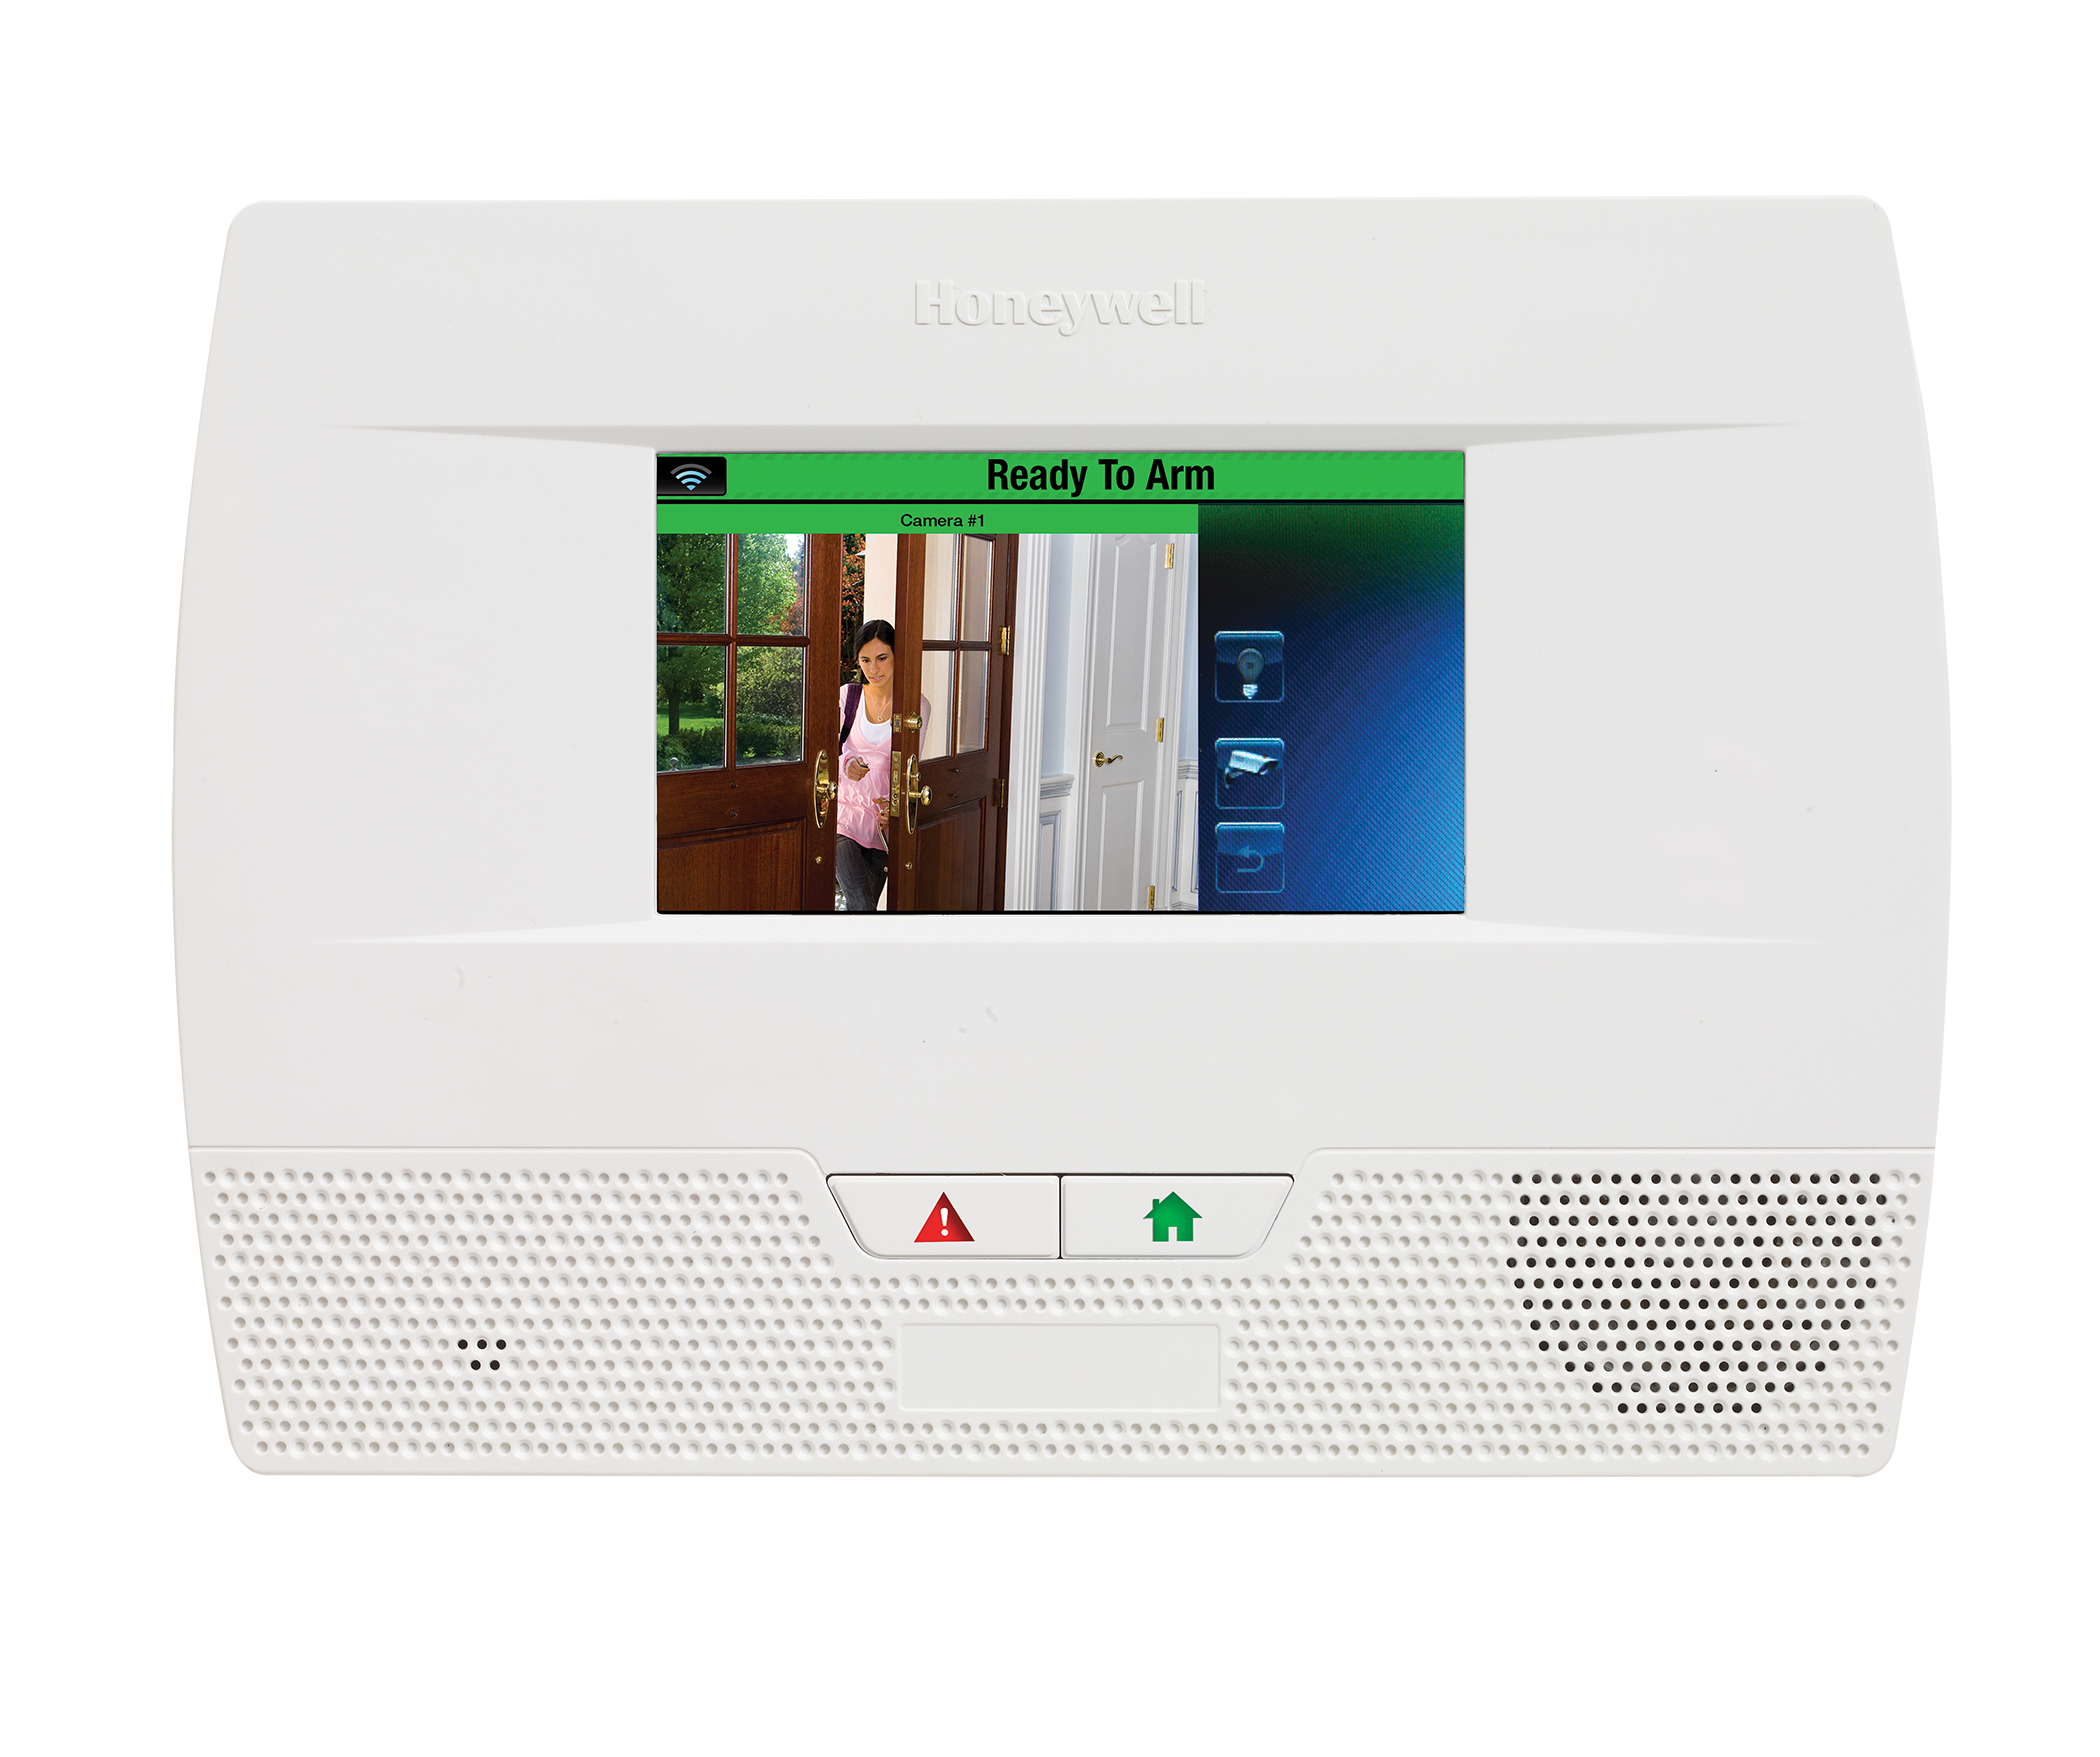 Dsc 1550 likewise Honeywell Wireless Alarm System Manual besides Cfp708 4 Standard 8 Zone Fire Alarm Panel Questions as well vedardalarm likewise Home Alarm Wiring. on fire alarm control panel manuals